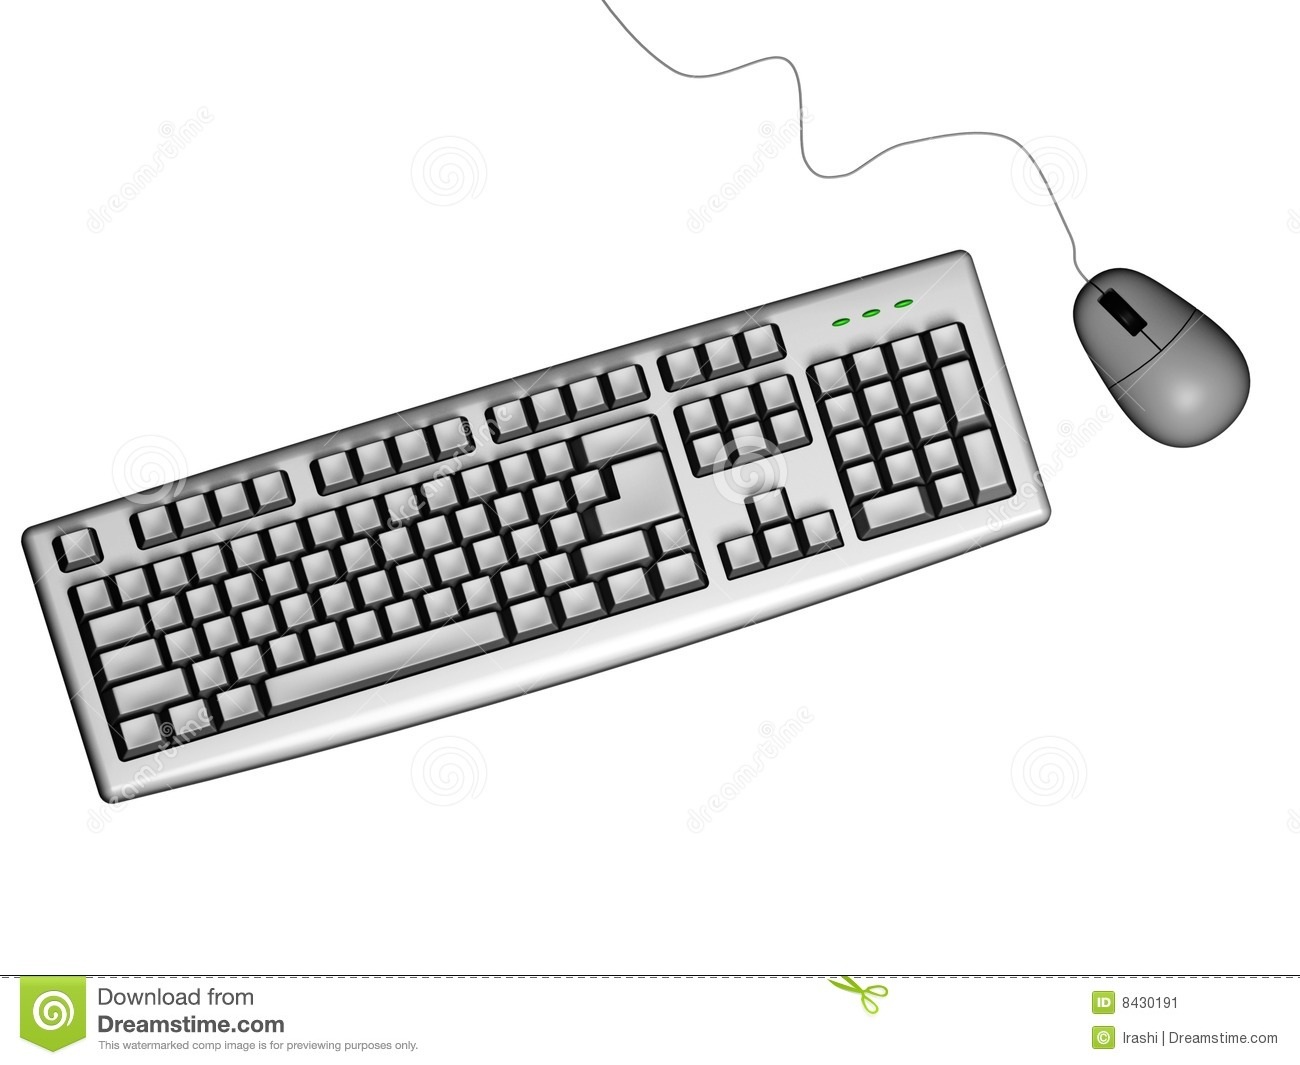 Computer keyboard clipart black and white. Mouse clipartfest